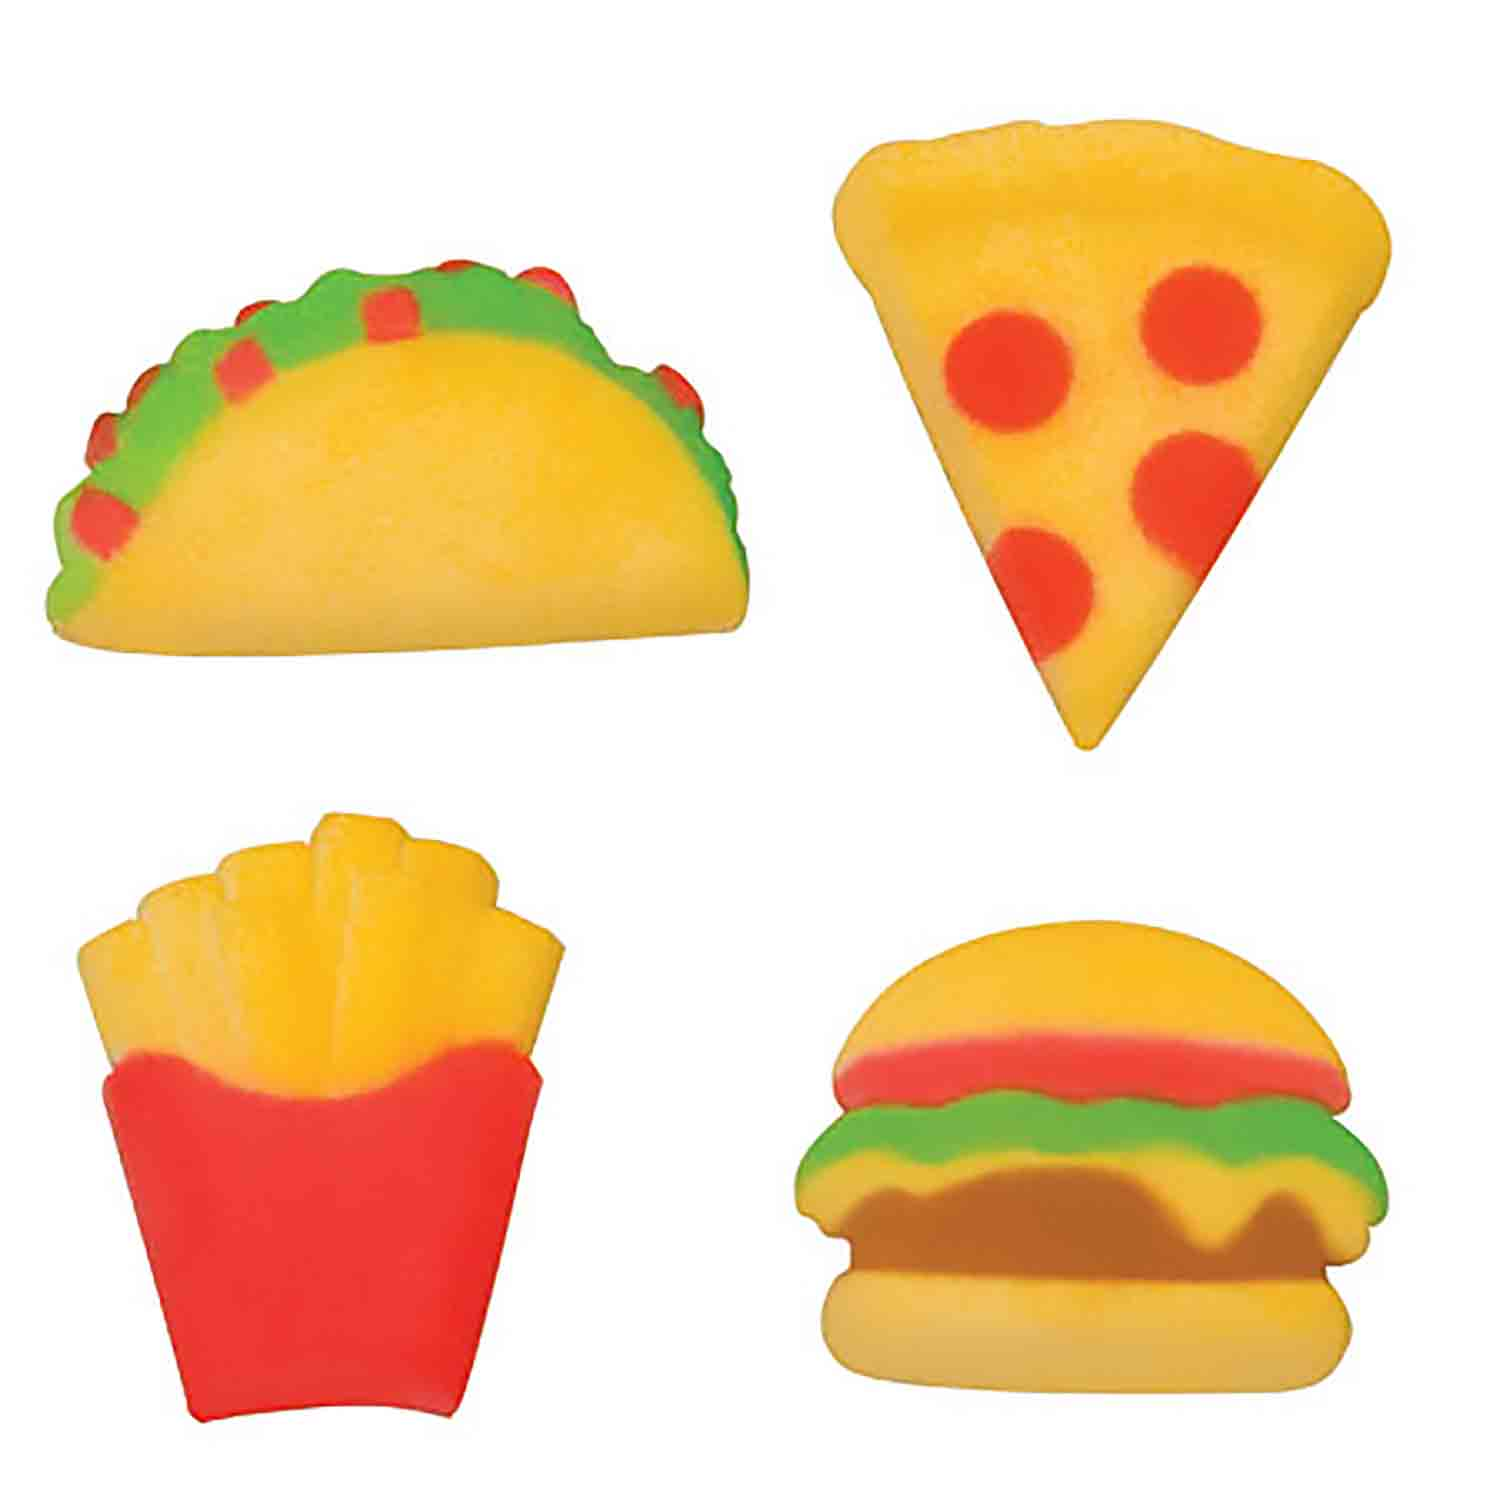 Dec-Ons® Molded Sugar - Fast Food Assortment